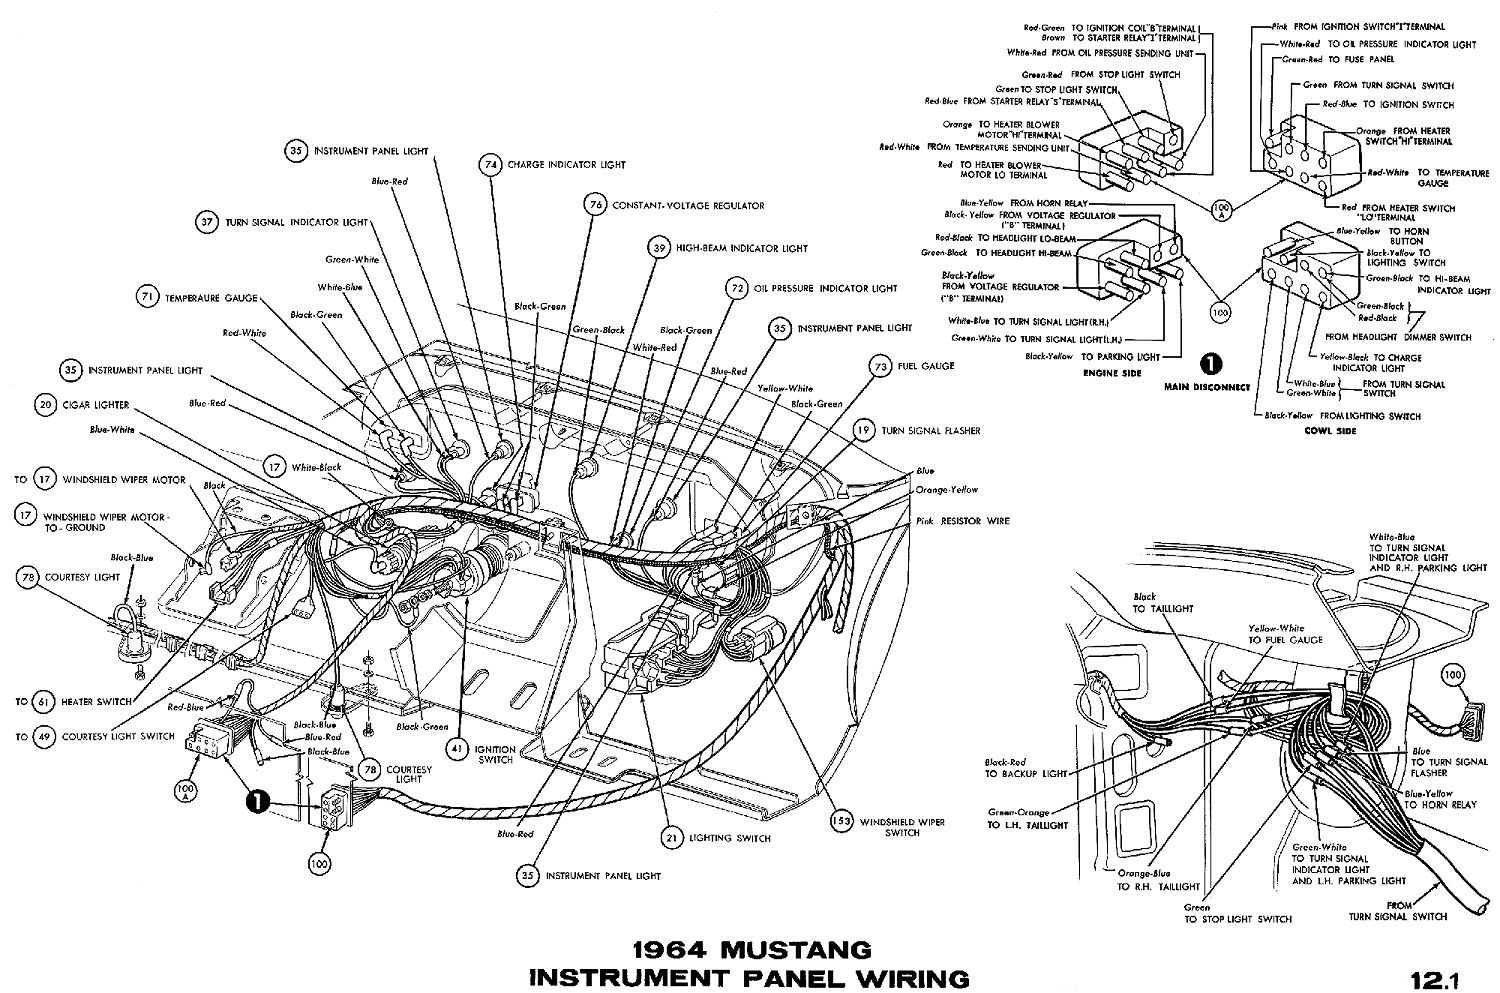 hight resolution of 1964 mustang wiring diagrams average joe restorationinstrument cluster connections wiper switch headlamp switch